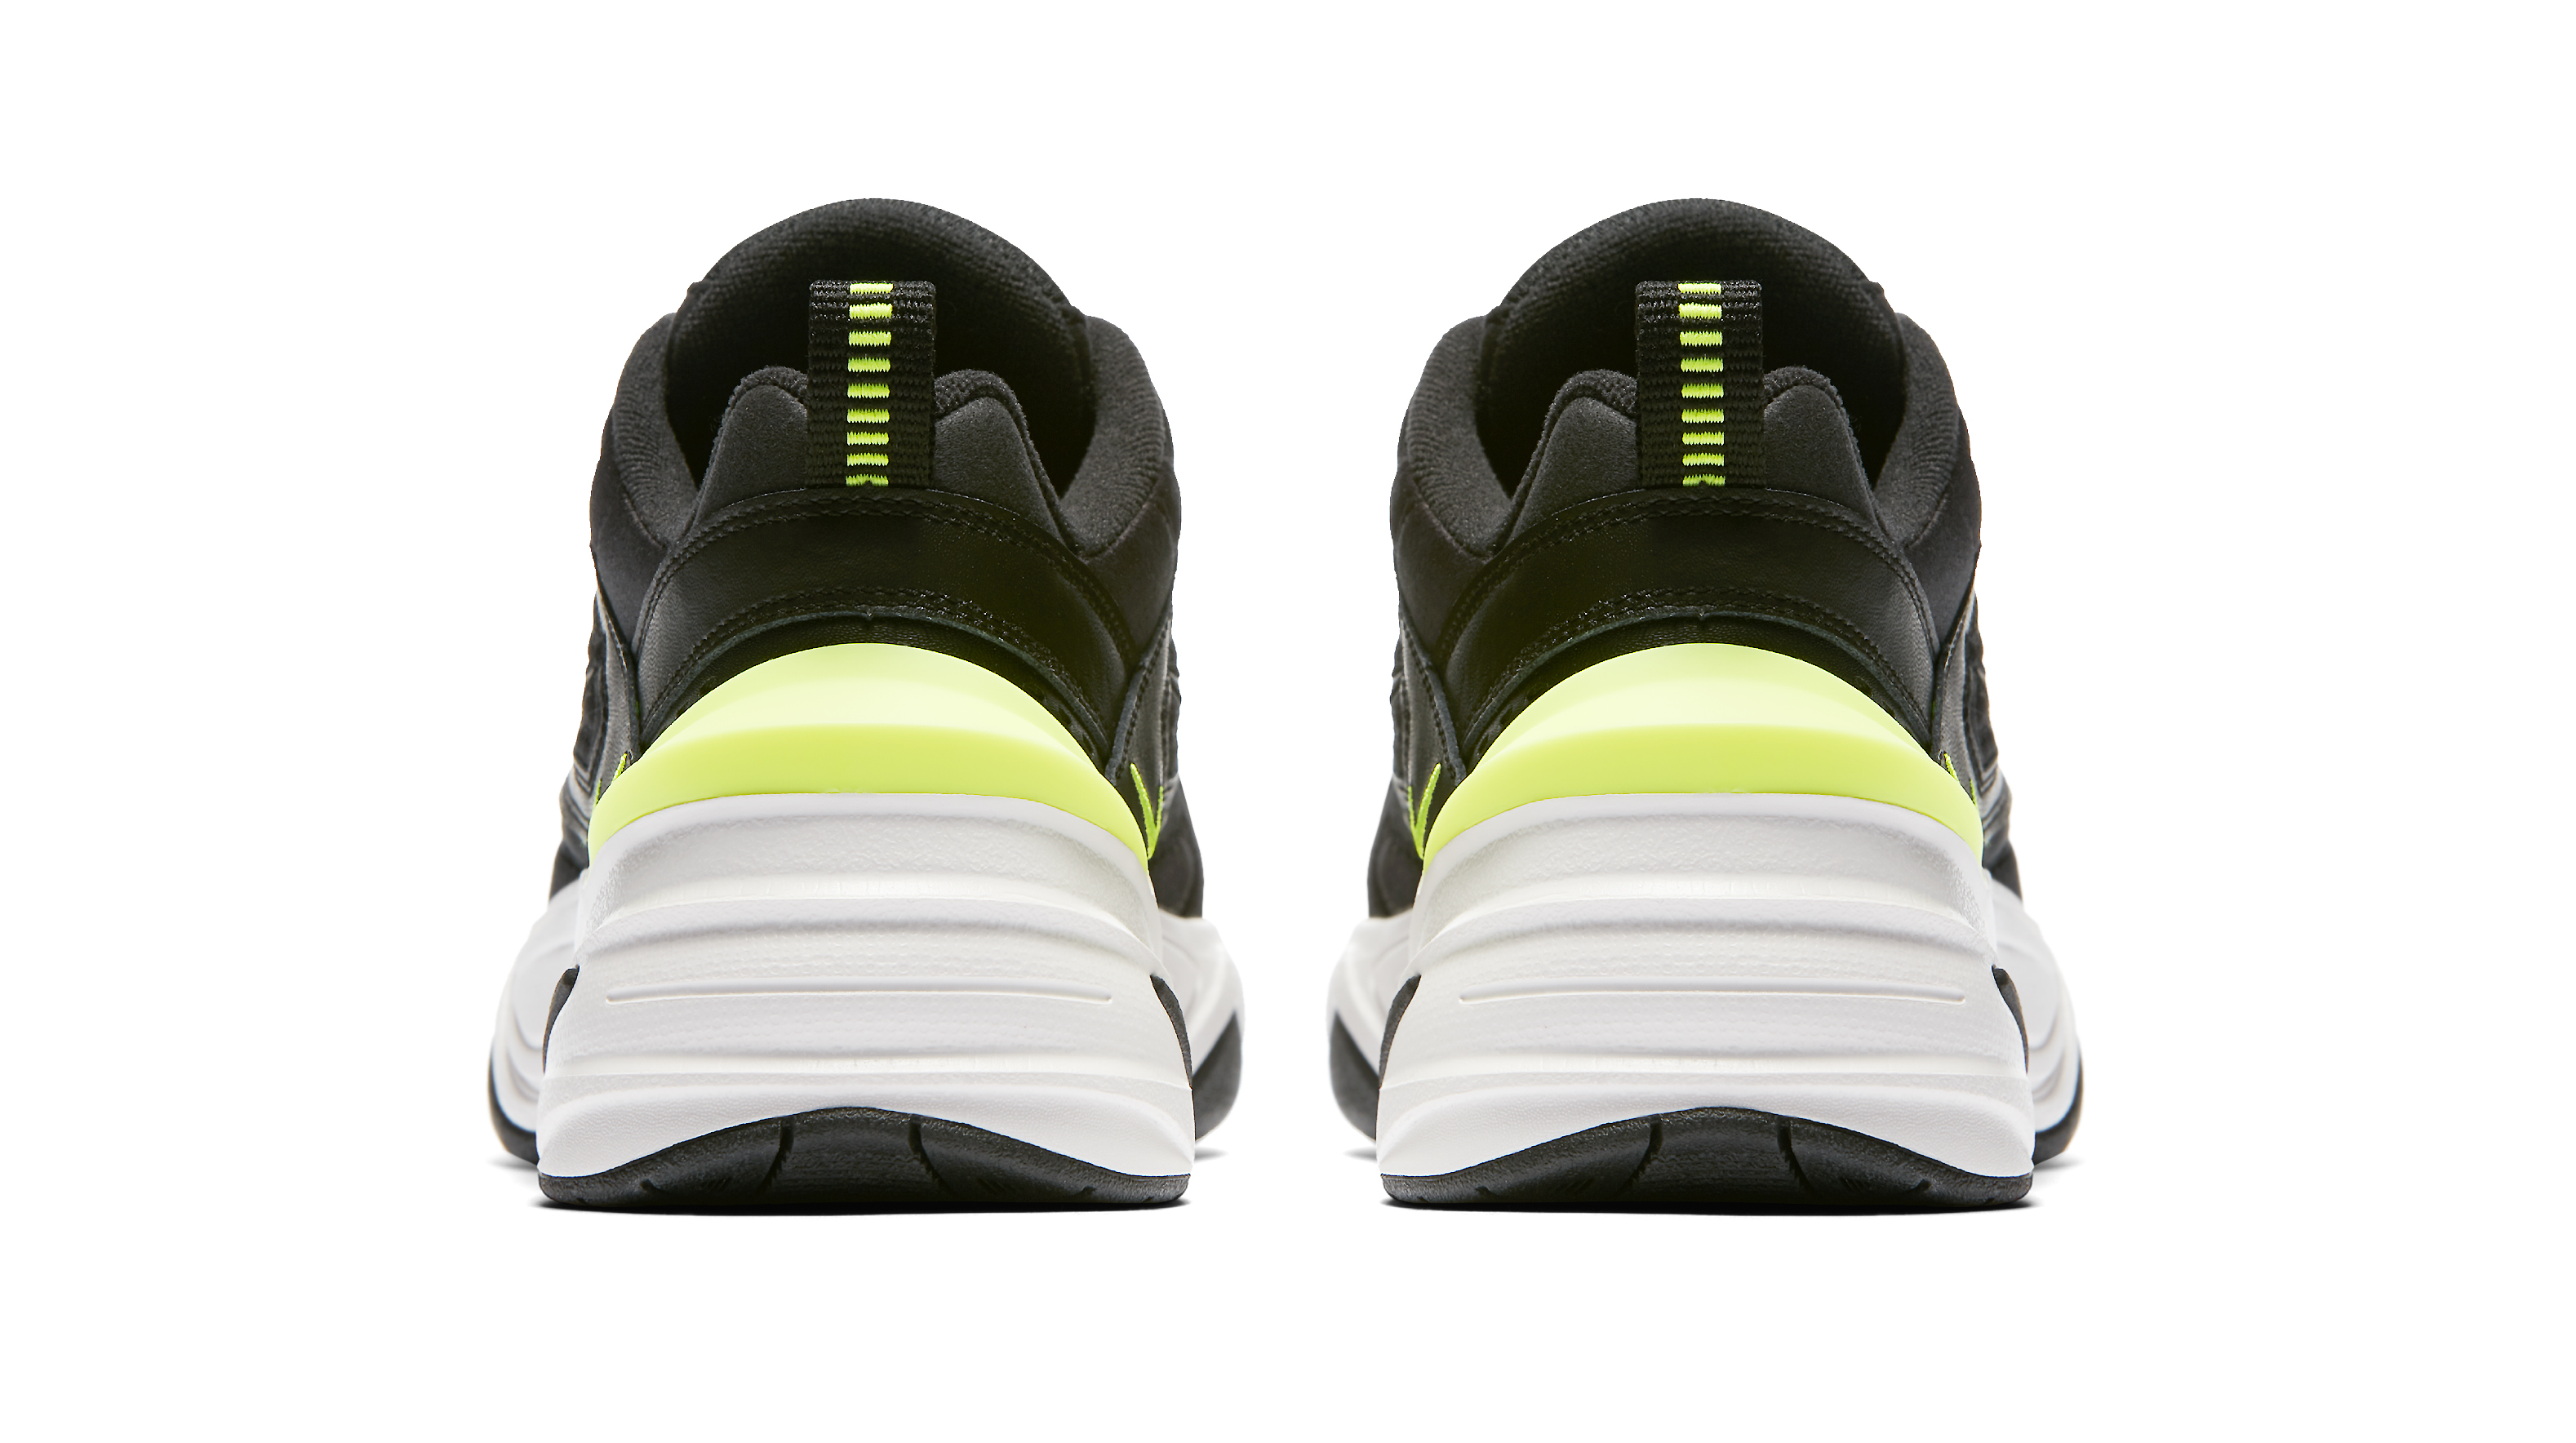 100% authentic f22c1 cdd8f ... Look Out For The Nike M2K Tekno Brings the Monarch Forward - Nike News  ...